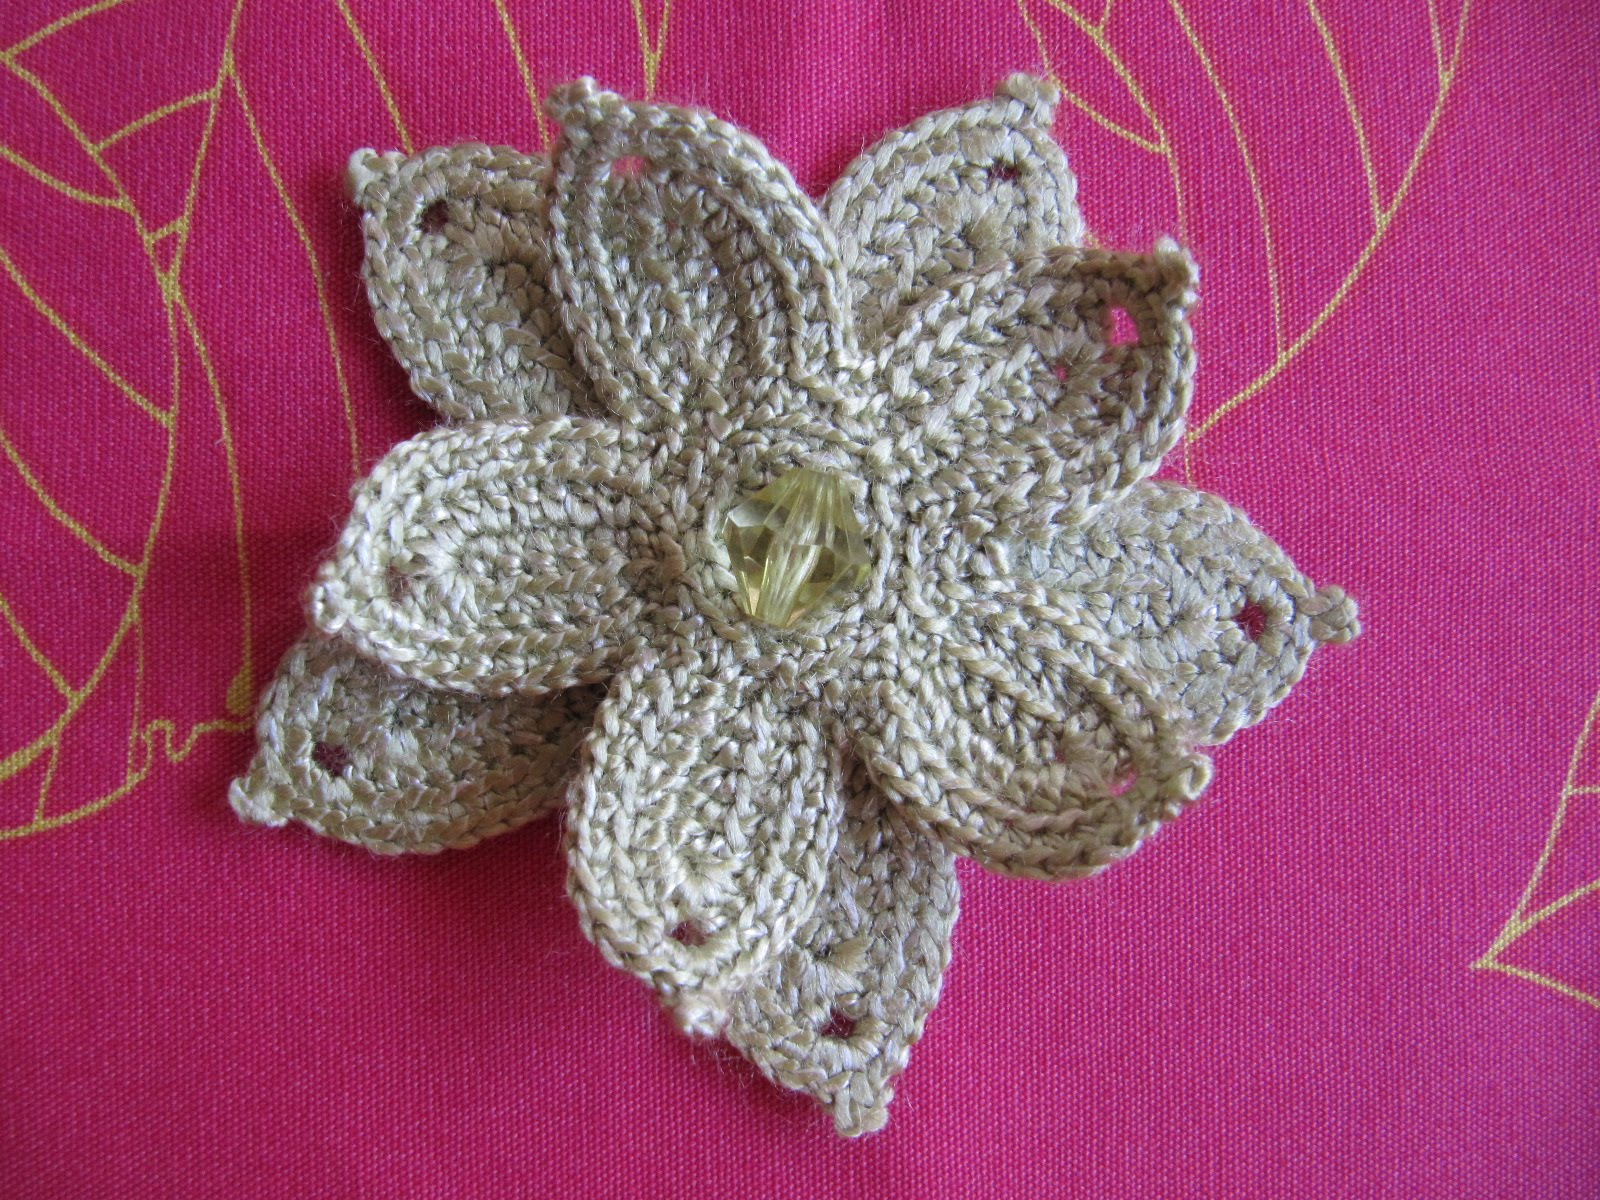 Labores de mari angeles broche con flor de ganchillo - Complementos de ganchillo ...